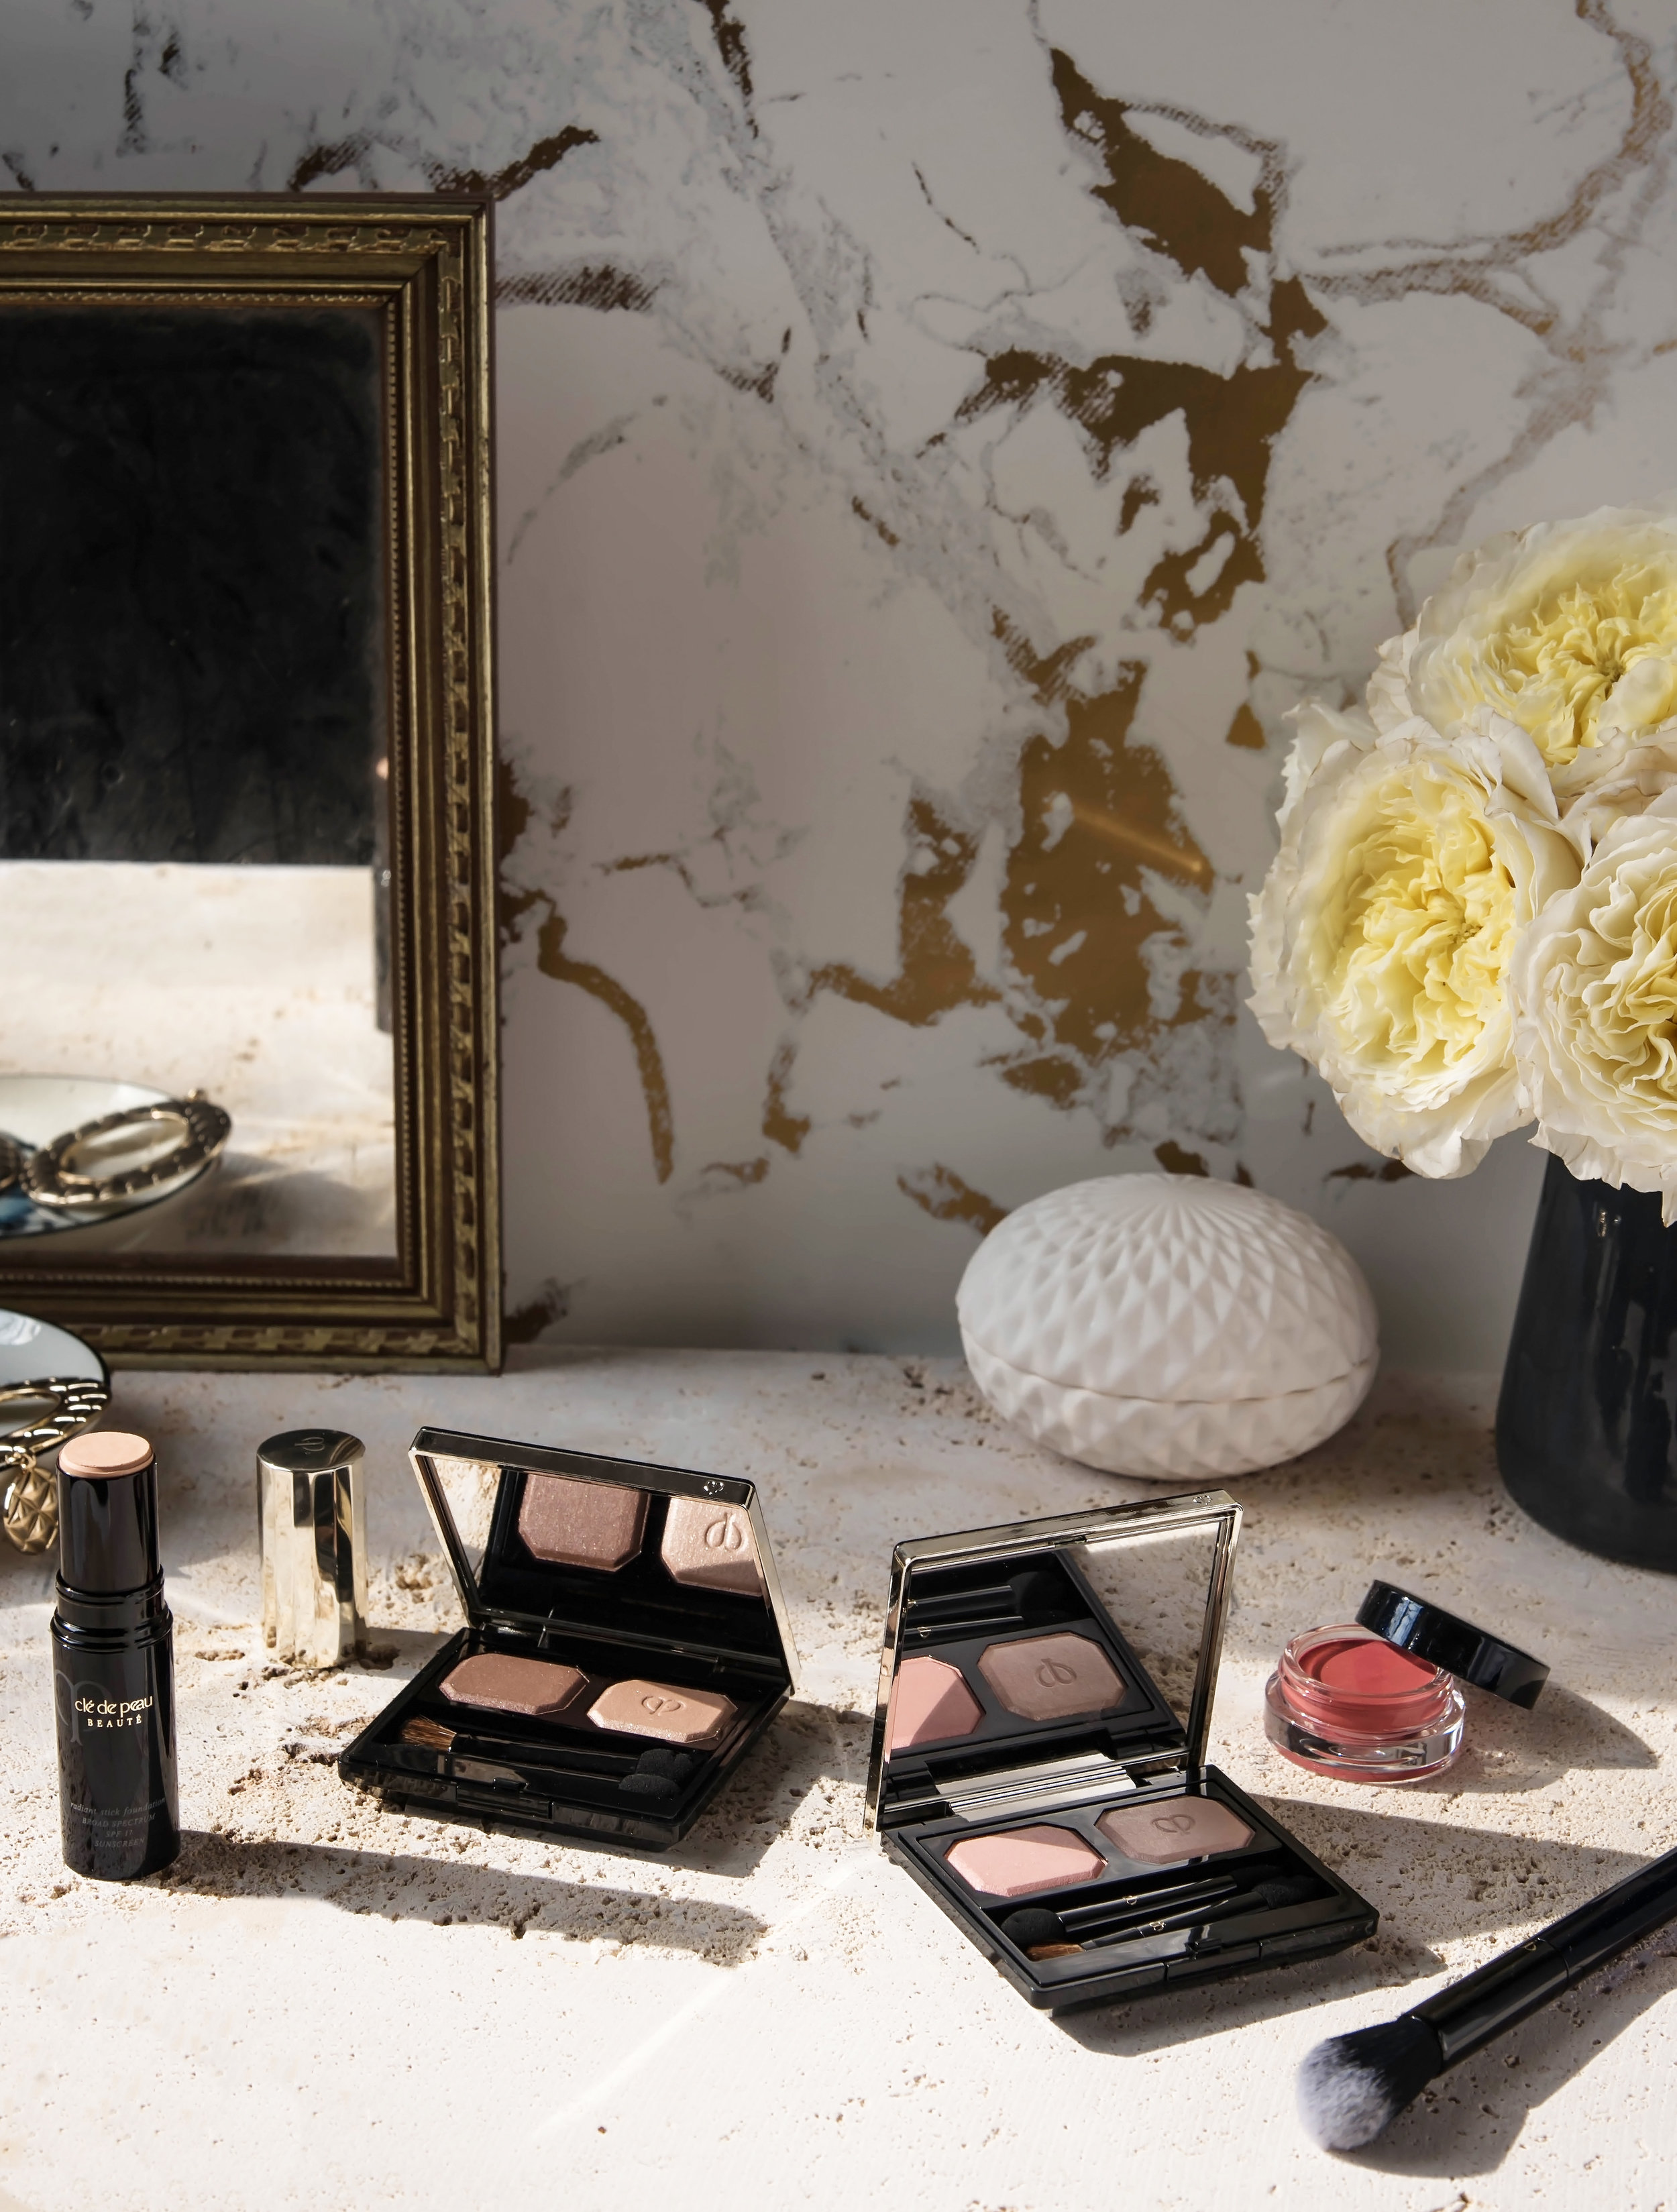 ROSE & IVY Journal On the Vanity with Cle de Peau Beaute Spring 2017 Collection